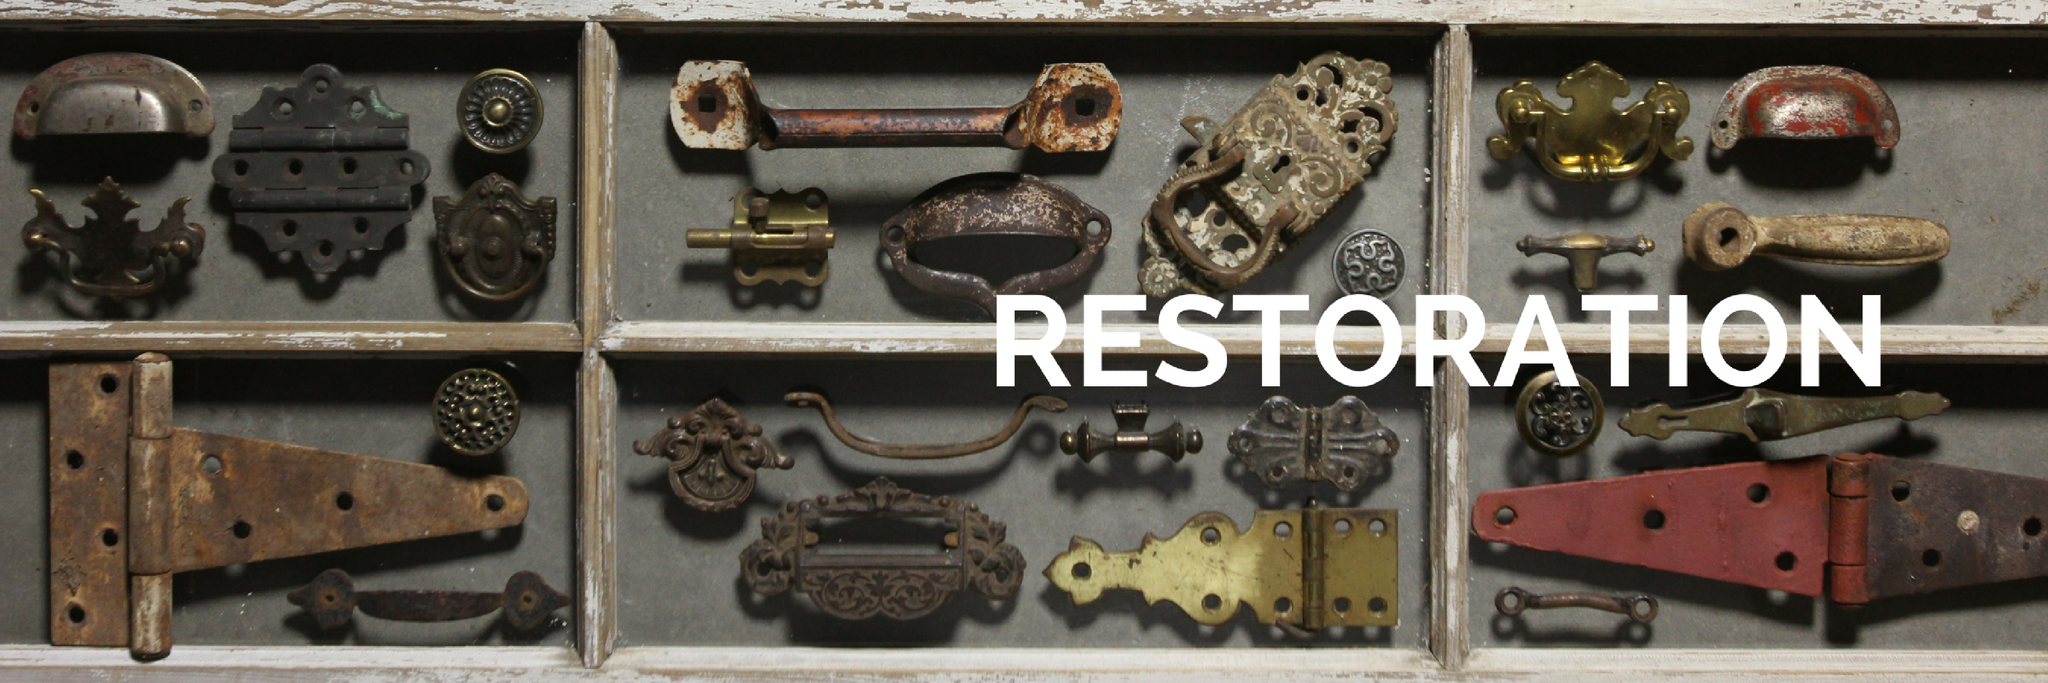 Collection of vintage and antique items used for home and building restoration